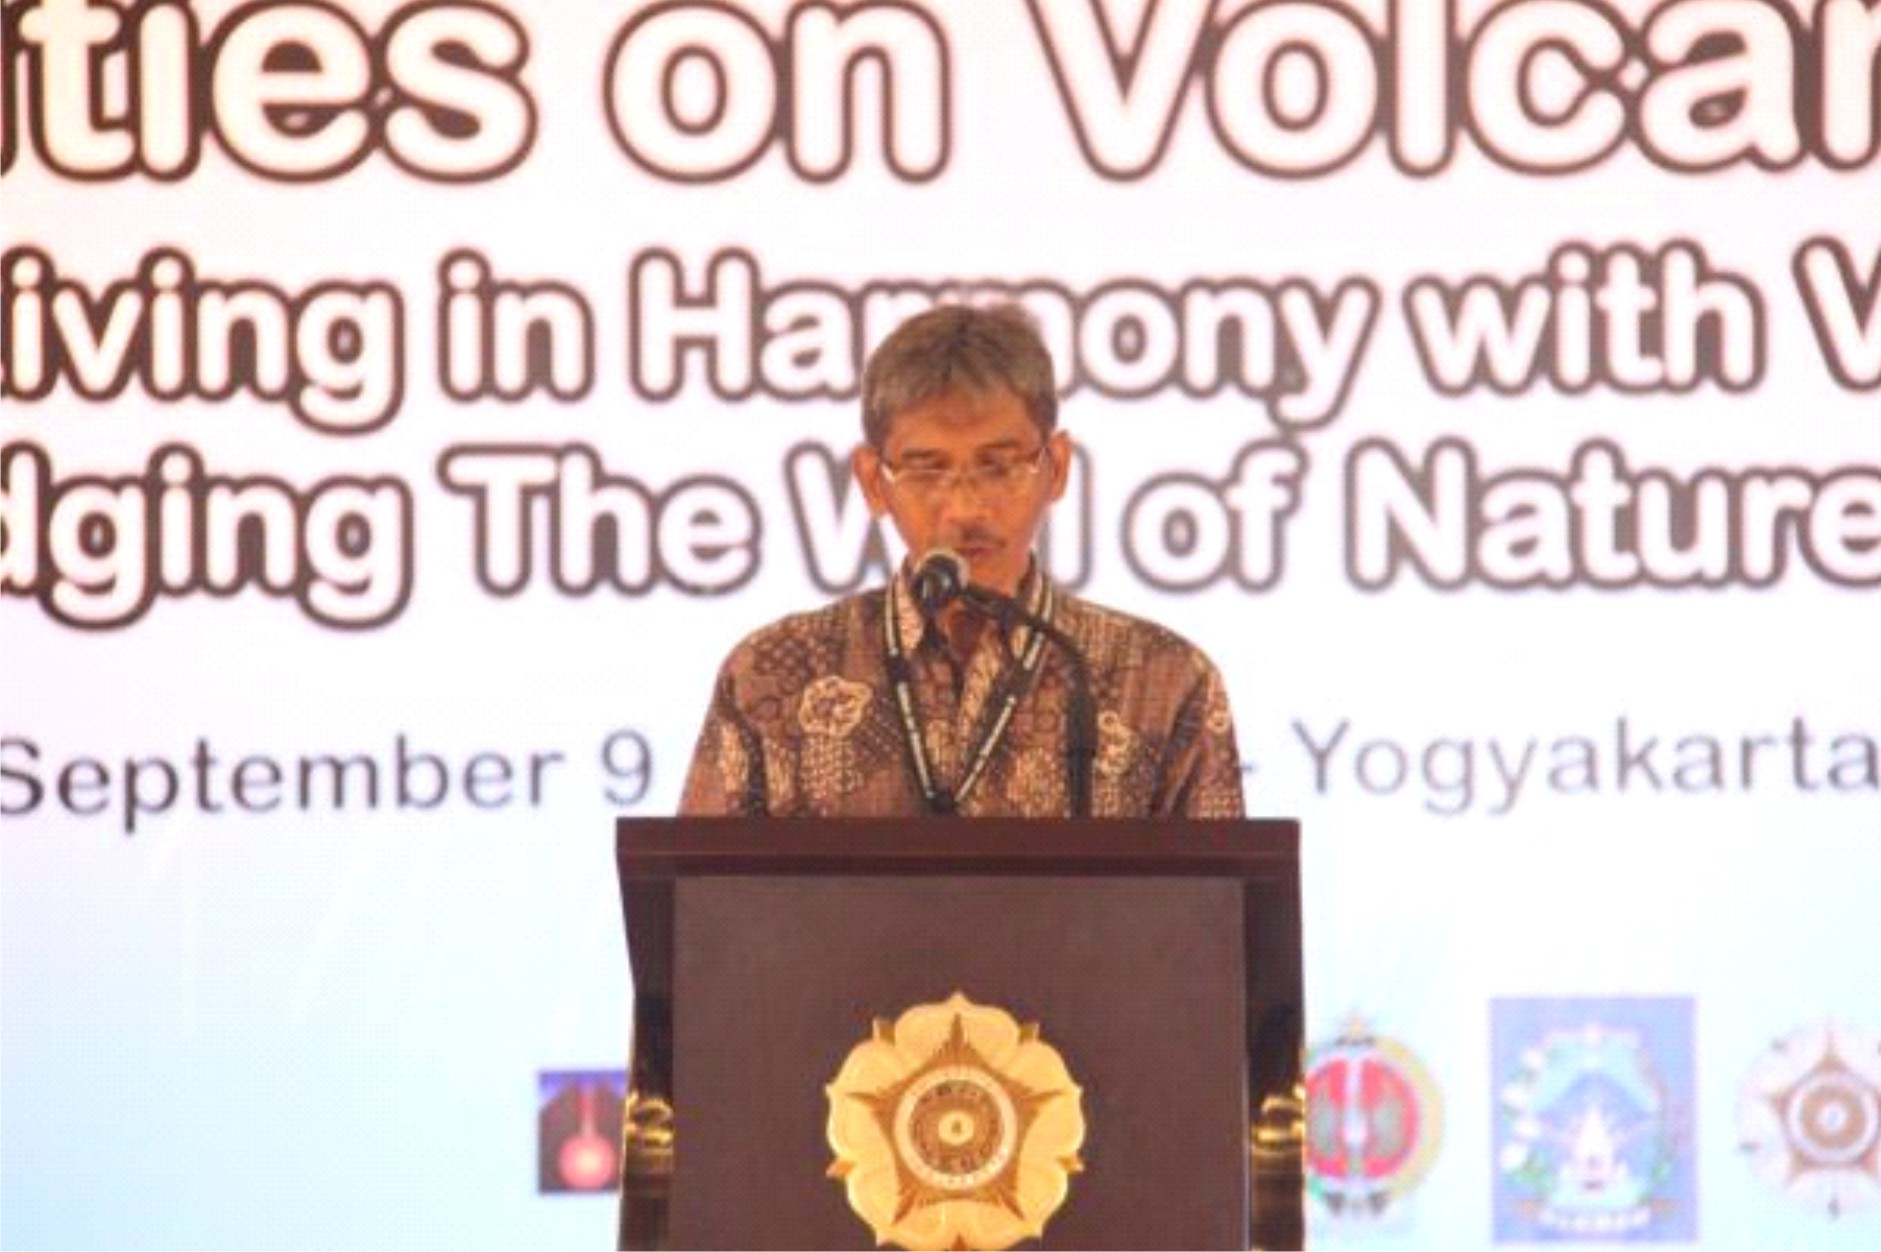 CITIES ON VOLCANOES 8 LIVING IN HARMONY WITH VOLCANO: Bridging the will of nature to society Yogyakarta, 9-13 September 2014